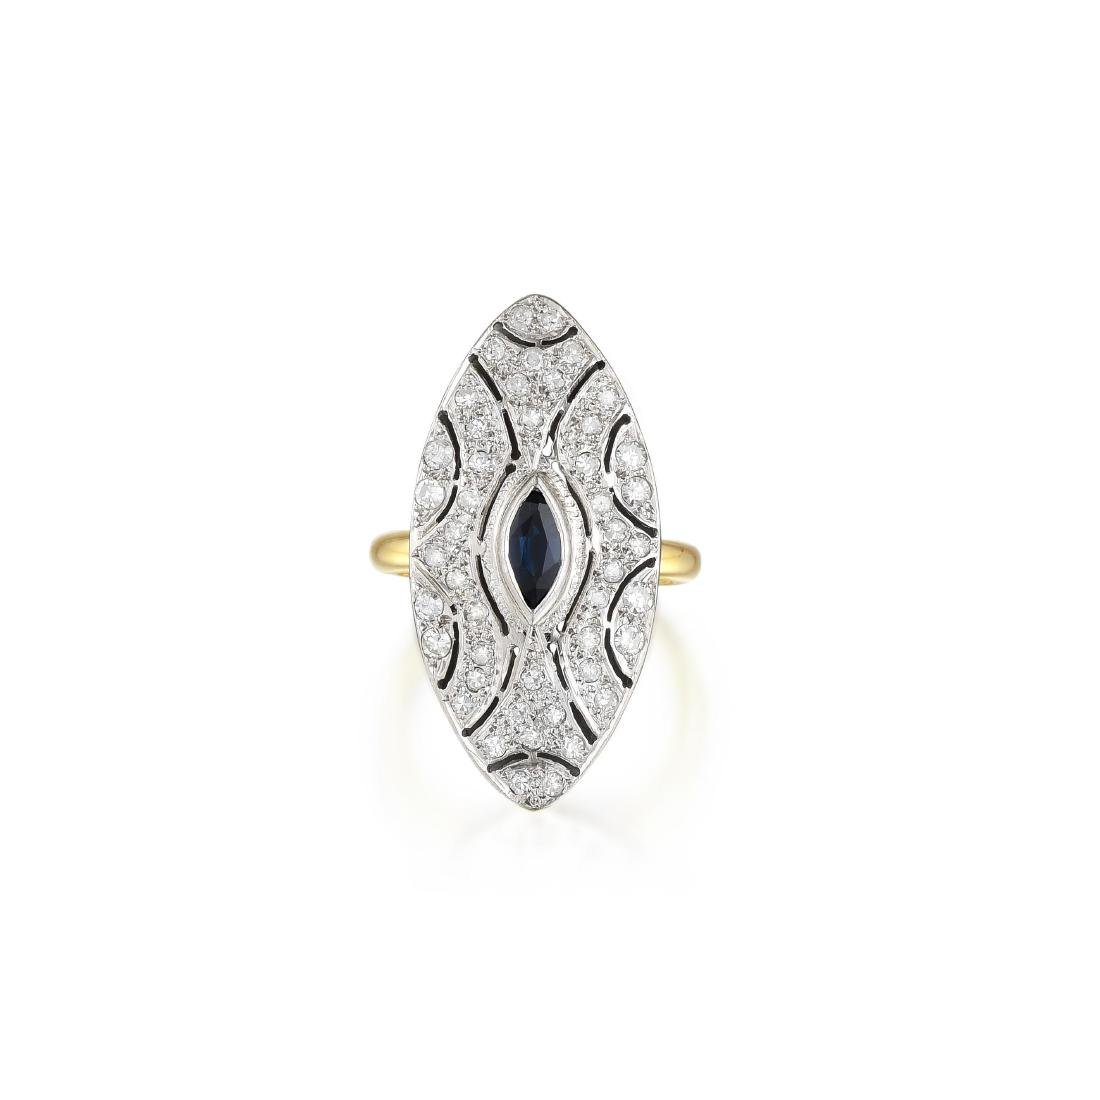 A 14K Gold Sapphire and Diamond Ring